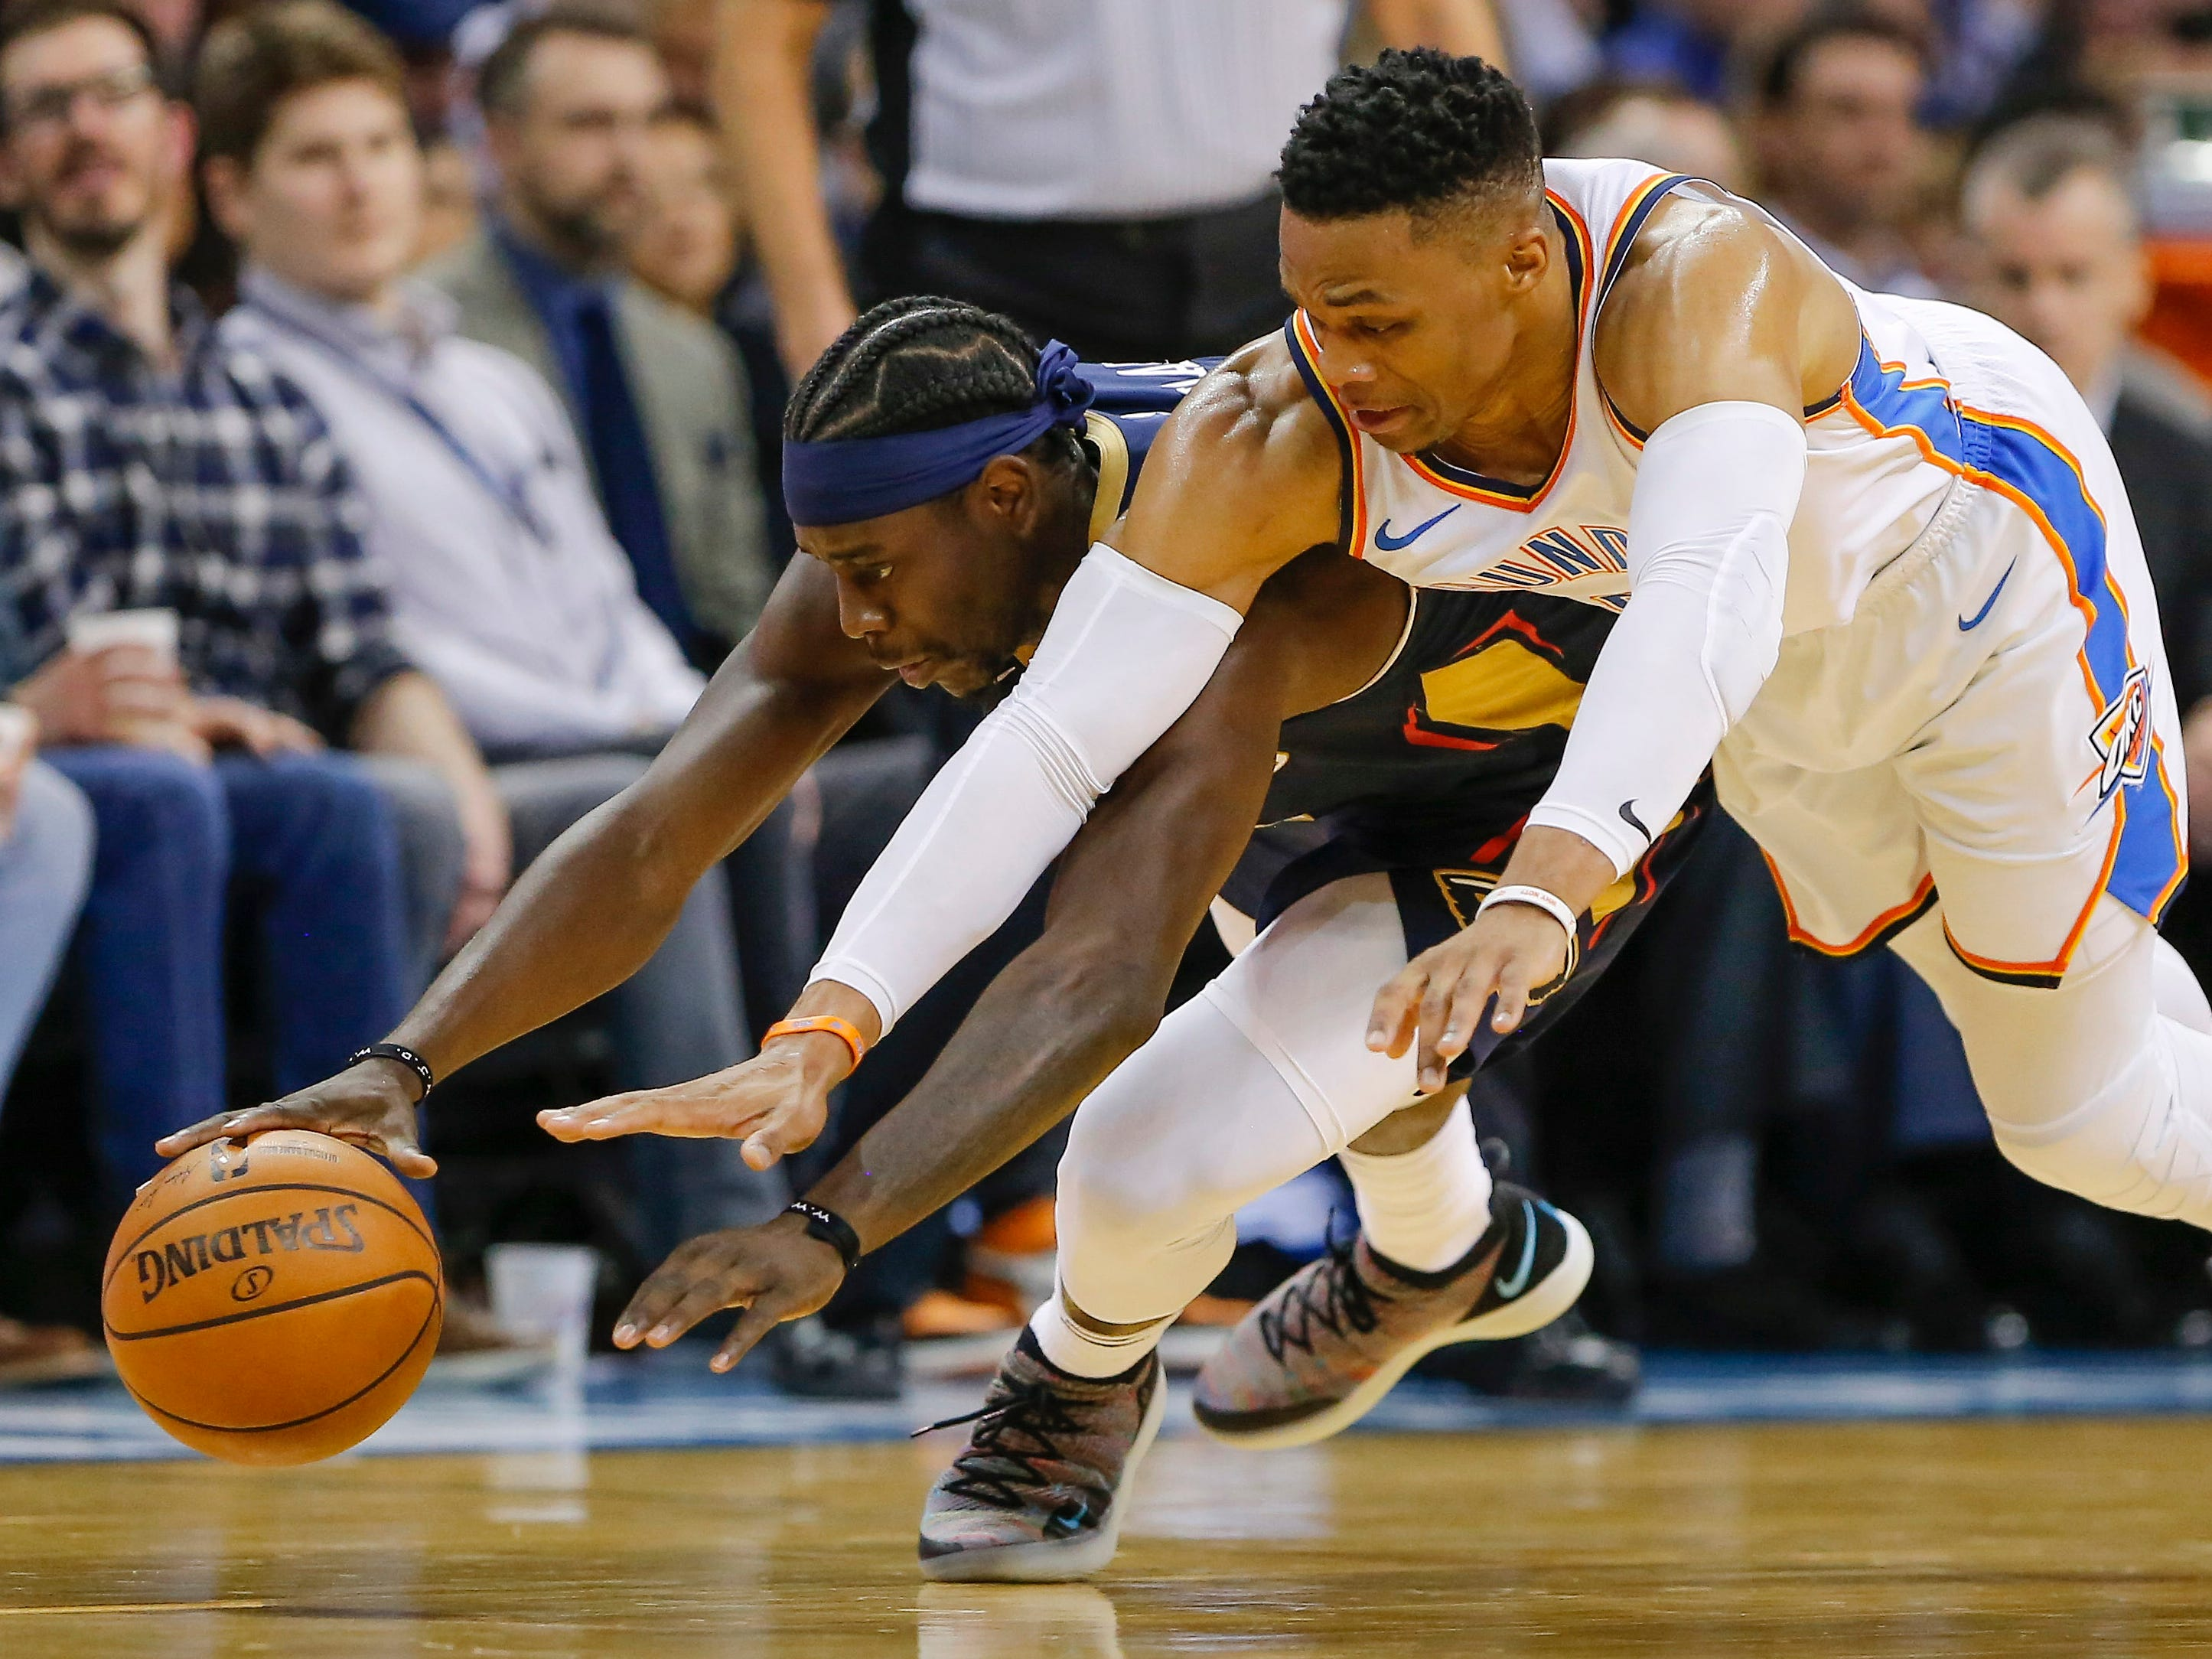 Jan. 24: Pelicans guard Jrue Holiday, left, and Thunder guard Russell Westbrook hit the deck while scrambling for a loose ball during the second half in Oklahoma City.